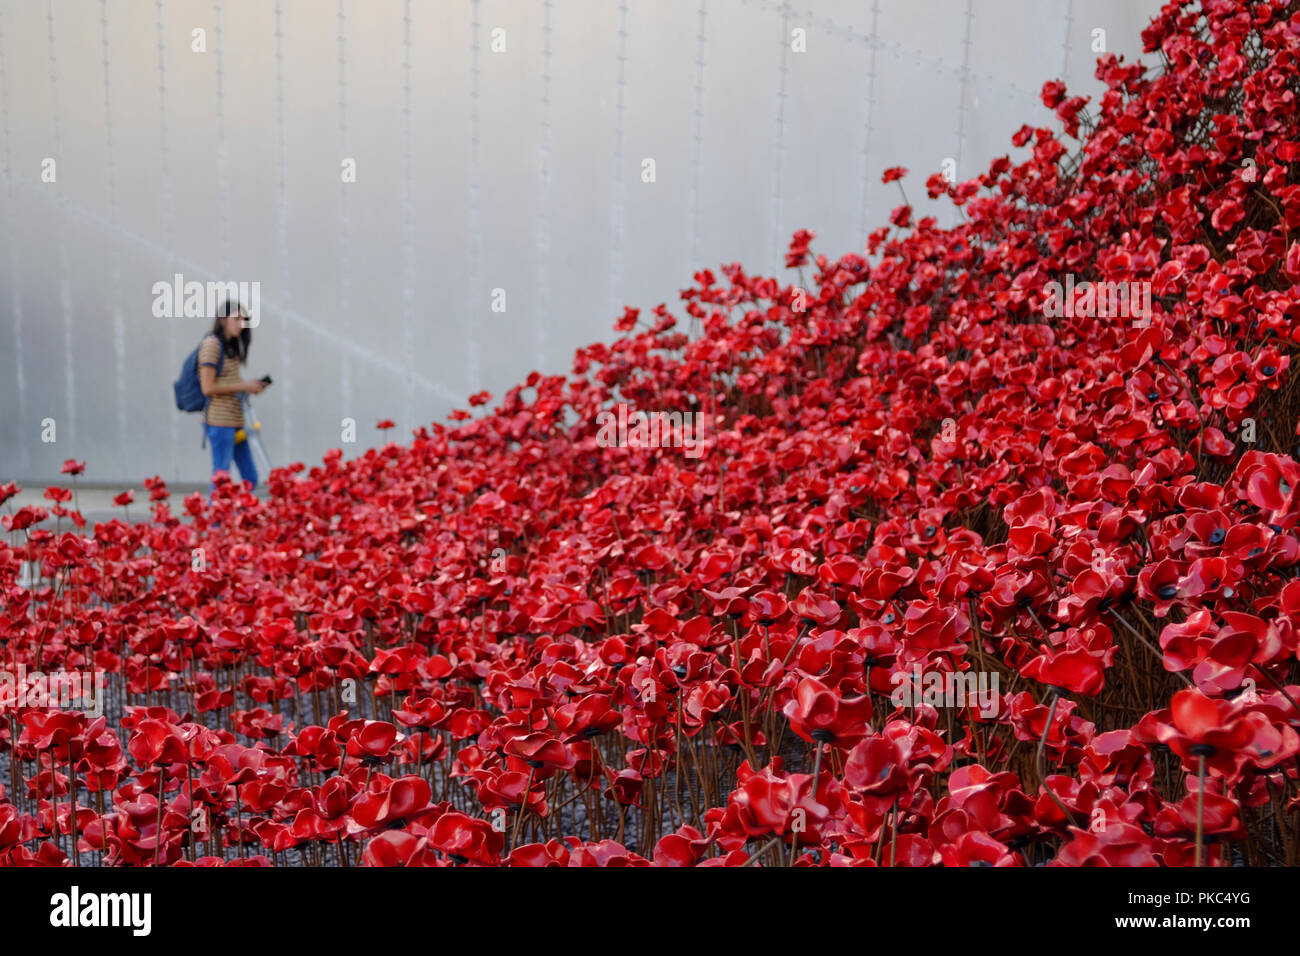 Salford, UK. 12 September 2018. Visitors at Imperial War Museum North look at 'Wave' and 'Weeping Window' an installation by artist Paul Cummins and installation designed by Tom Piper. The installation was originally at HM Tower of London from August to November 2014 where 888,246 poppies were displayed, one for every British or Colonial life lost at the Front during the First World War. Together, the sculptures Wave and Weeping Window are made of over 11,000 poppies. Credit: Premos/Alamy Live News - Stock Image